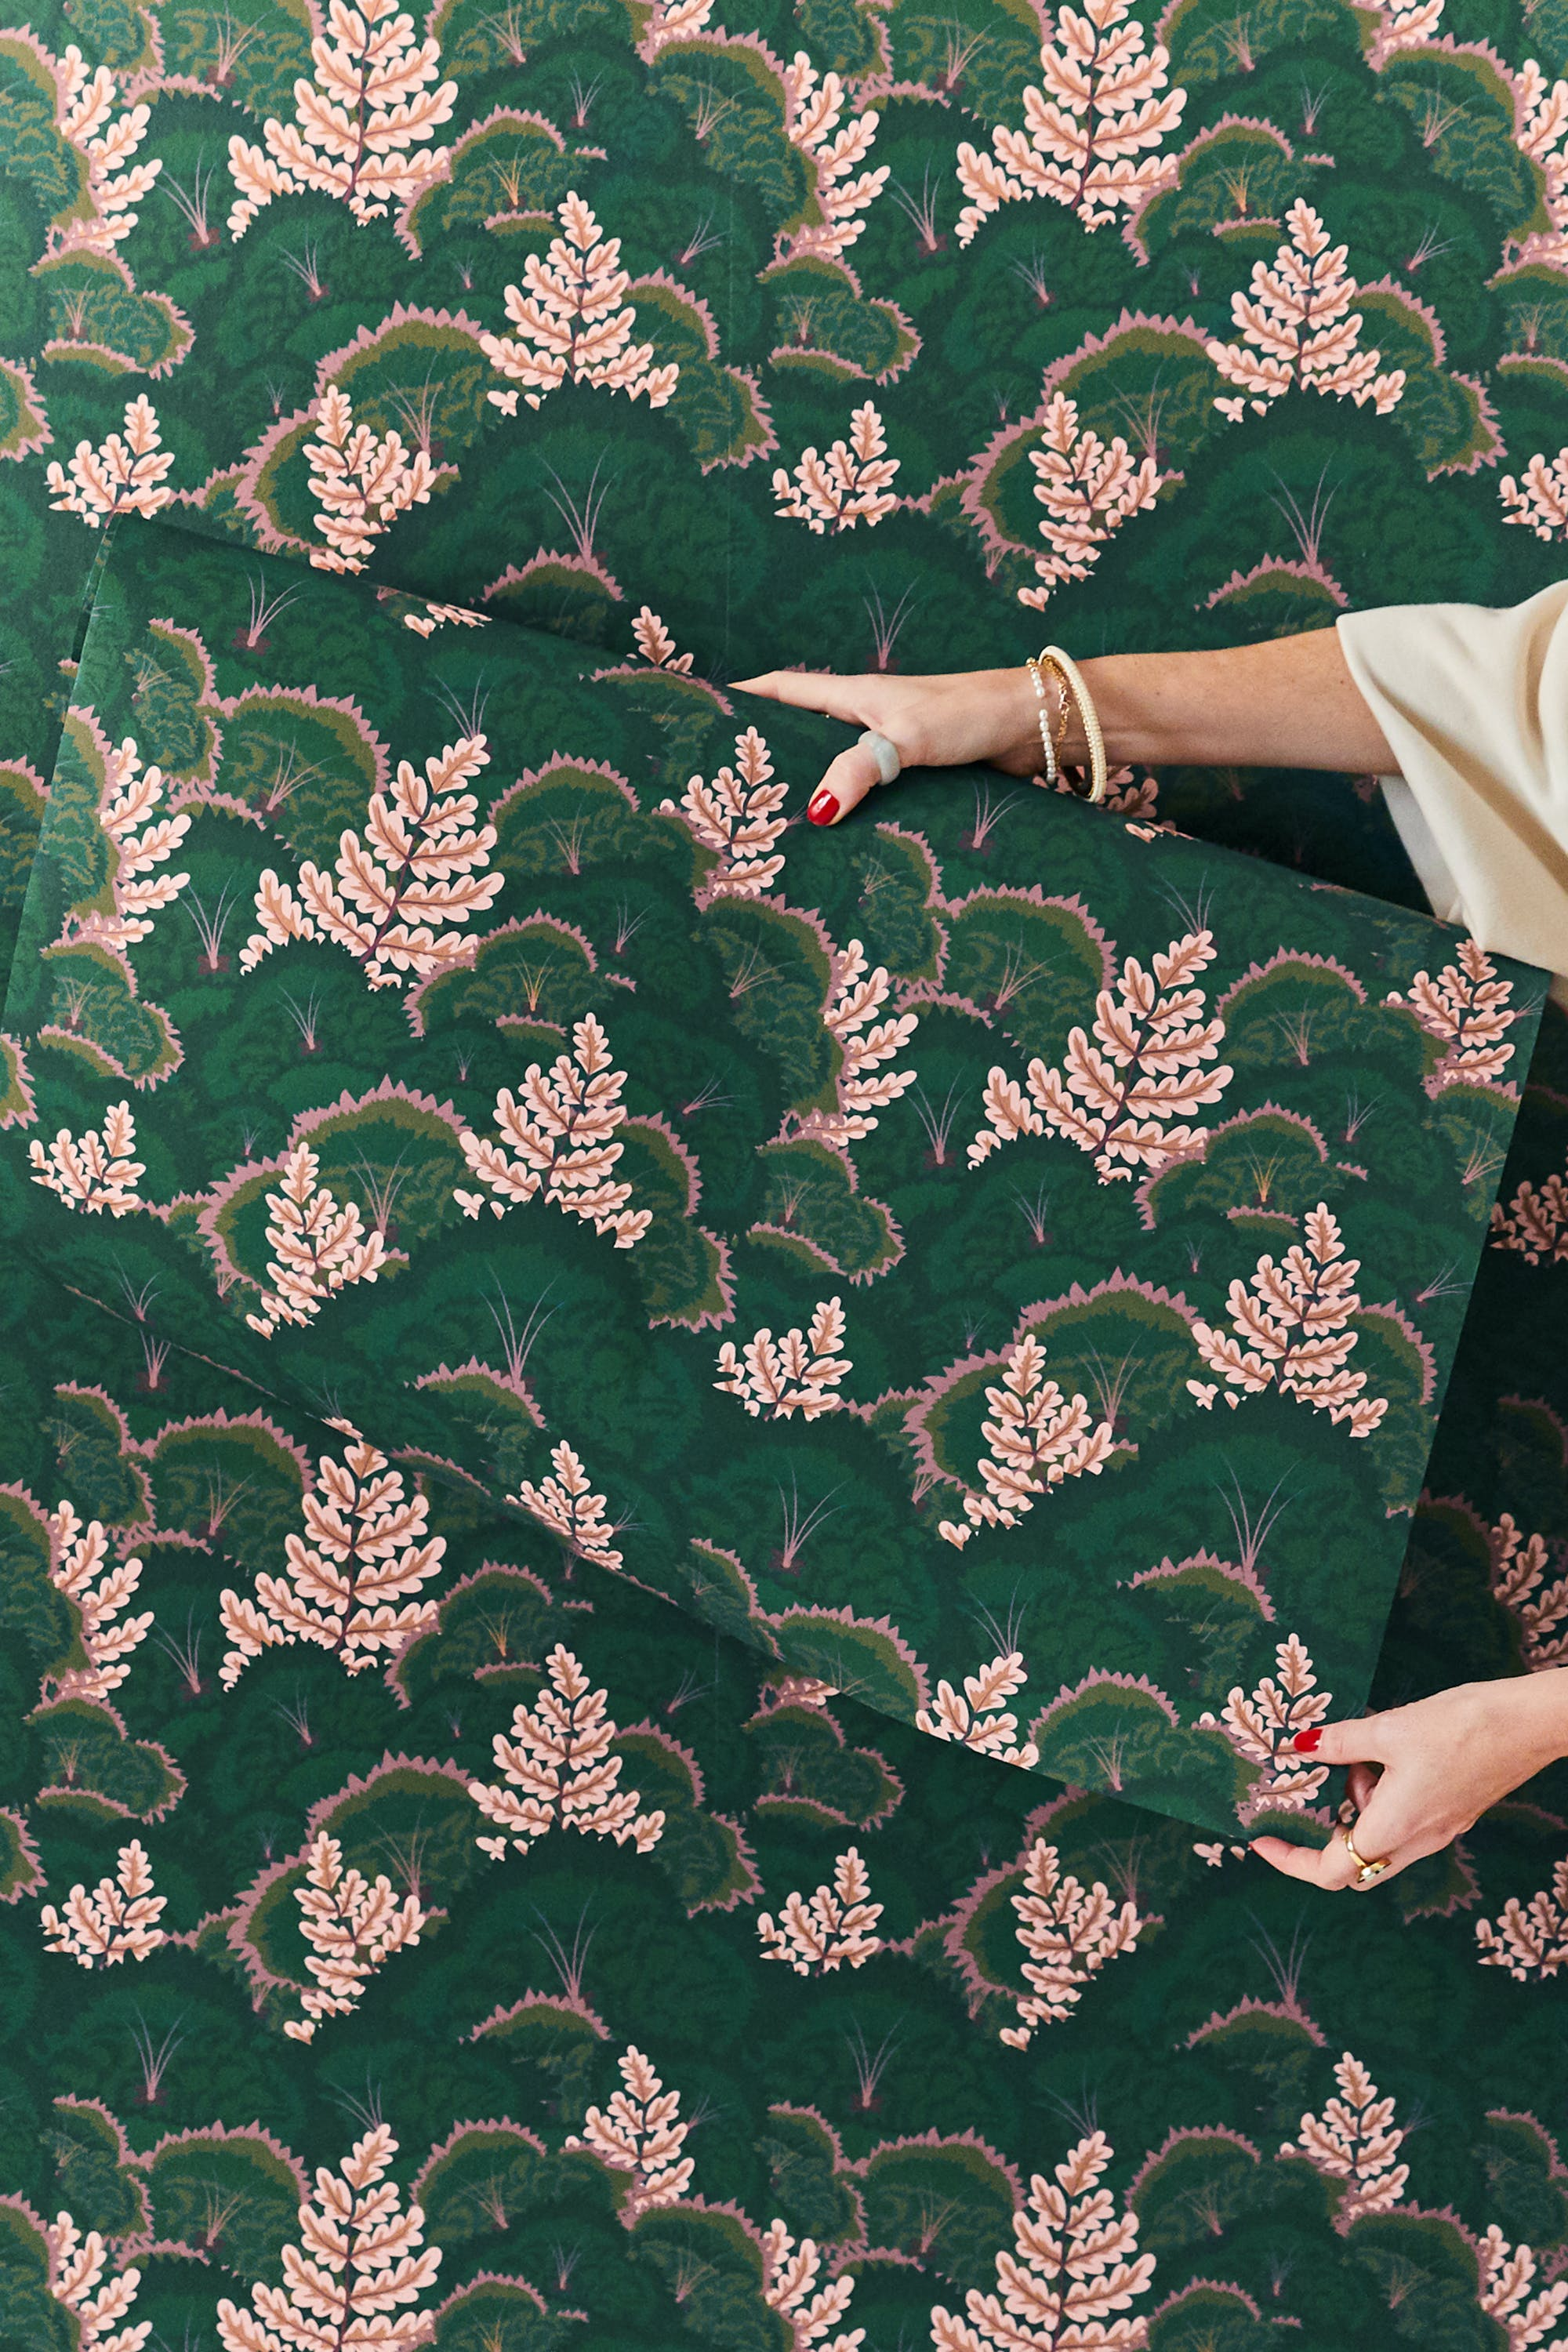 Woman holding Lick x Natasha Coverdale Electric Poppies 02 wallpaper